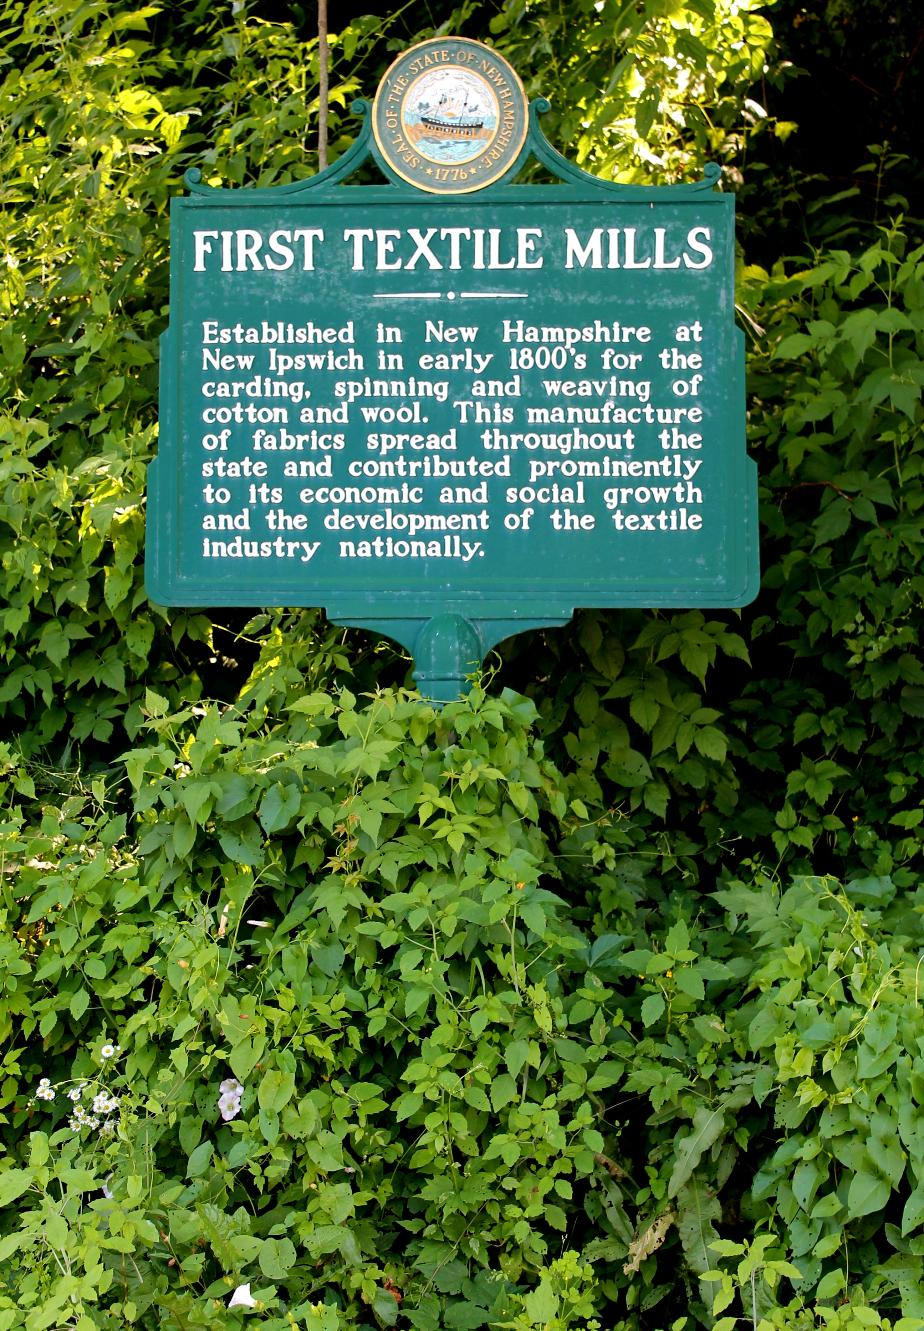 First Textile Mills - New Ipswich New Hampshire